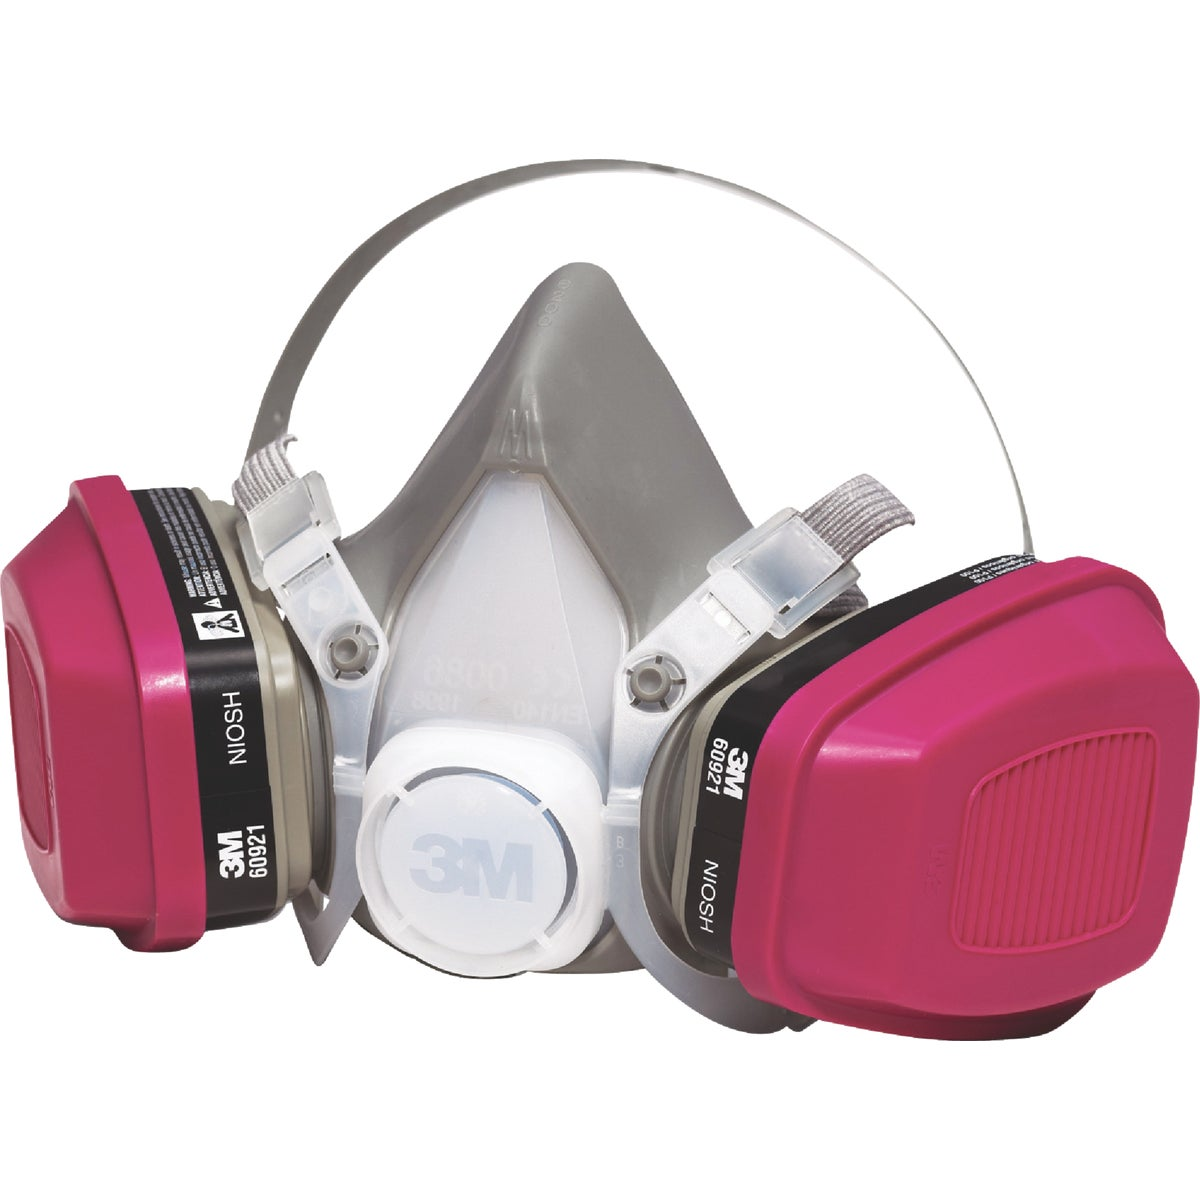 HOUSEHOLD RESPIRATOR - 65021HA1-C by 3m Co